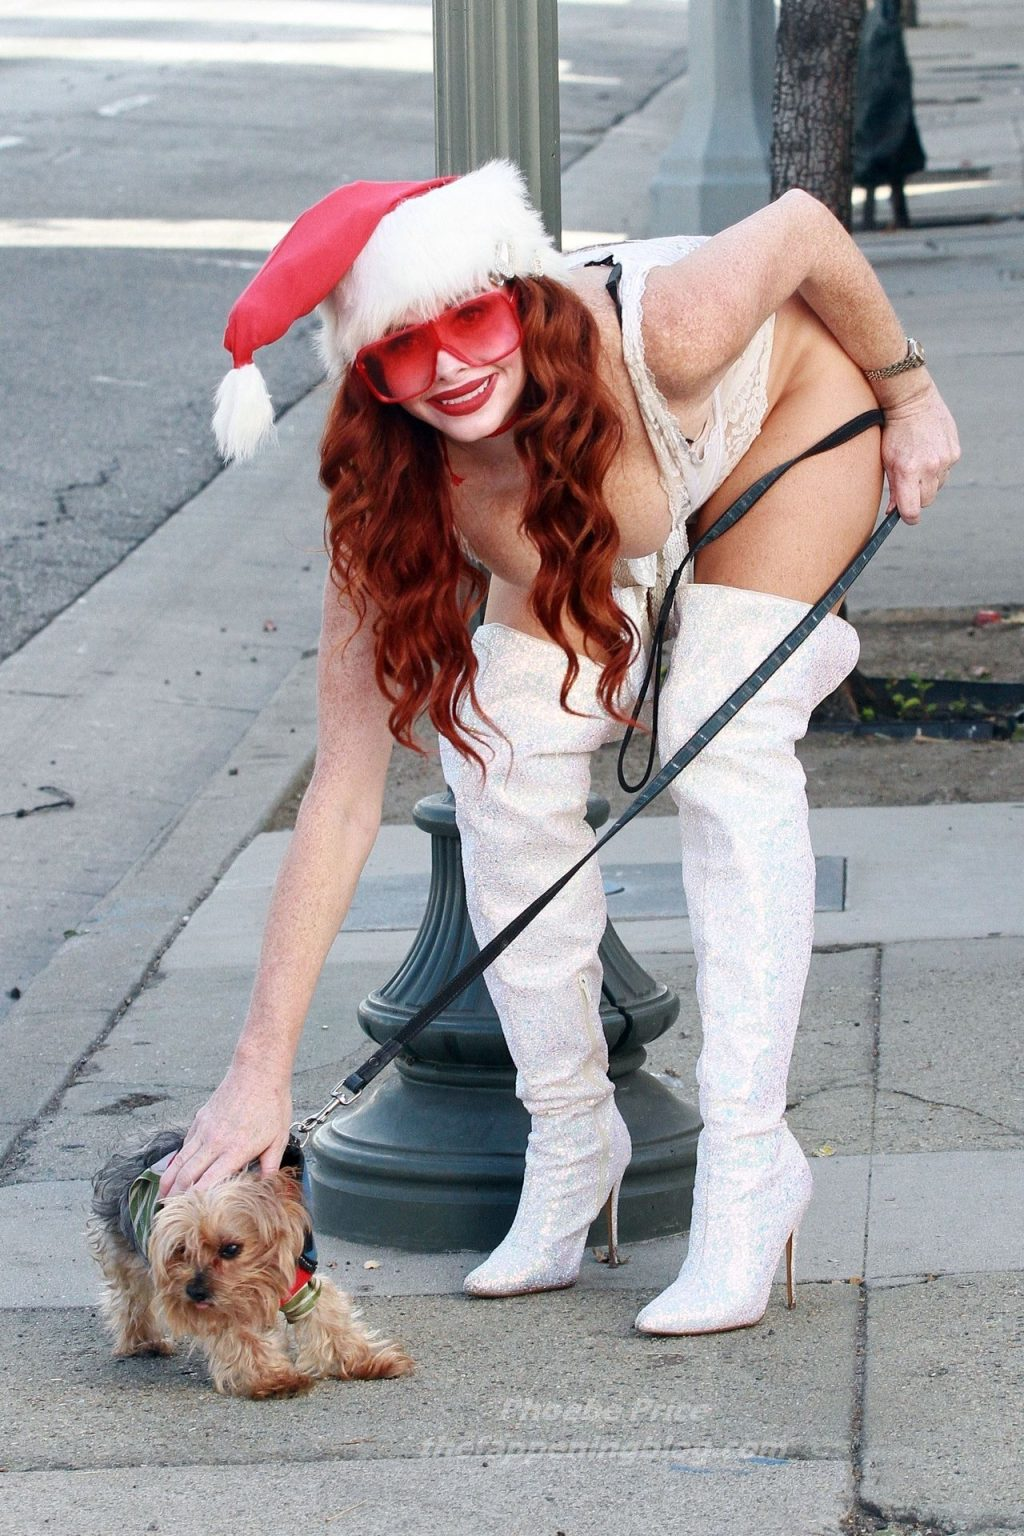 Phoebe Price is Seen in the Spirit for the Holidays (41 Photos)